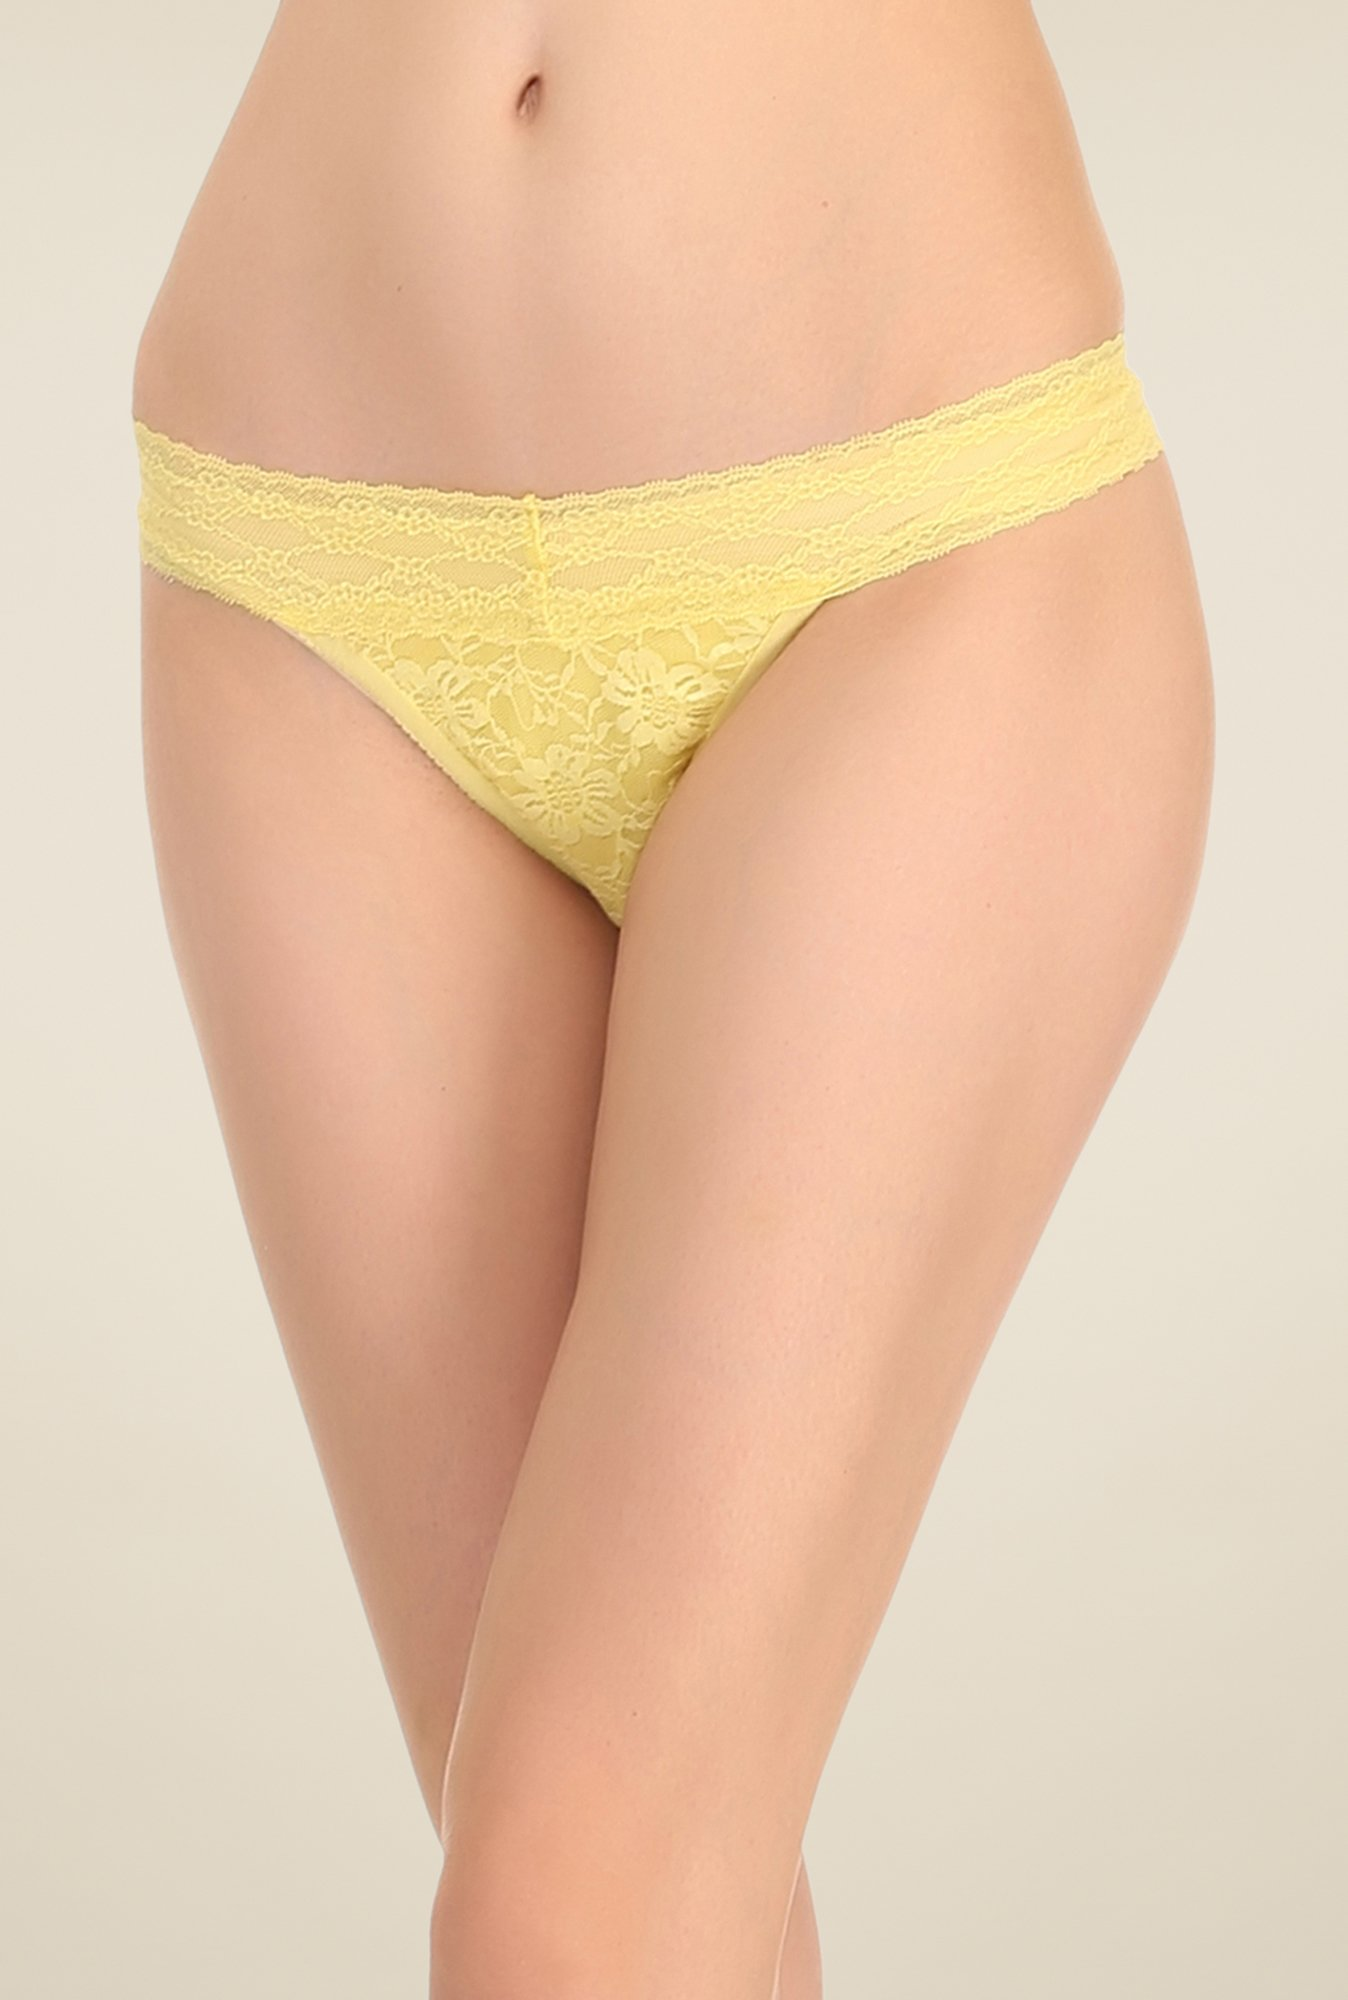 Clovia Yellow Lacy Thong Panty